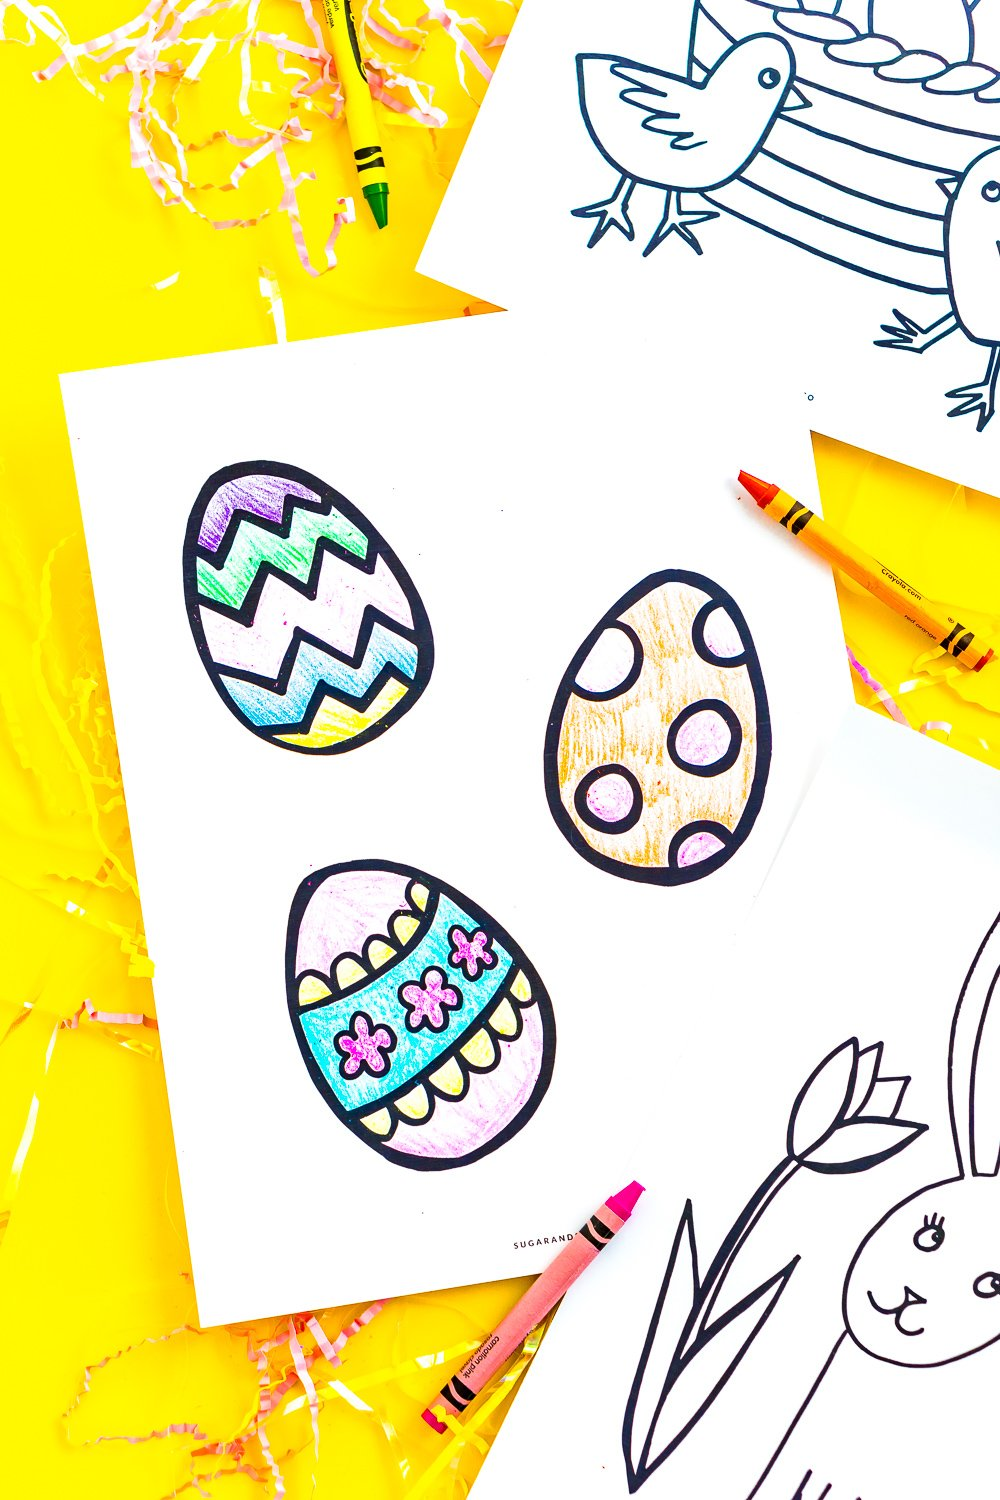 Easter egg coloring page that's been coloring in with pink, purple, blue, green, and orange.